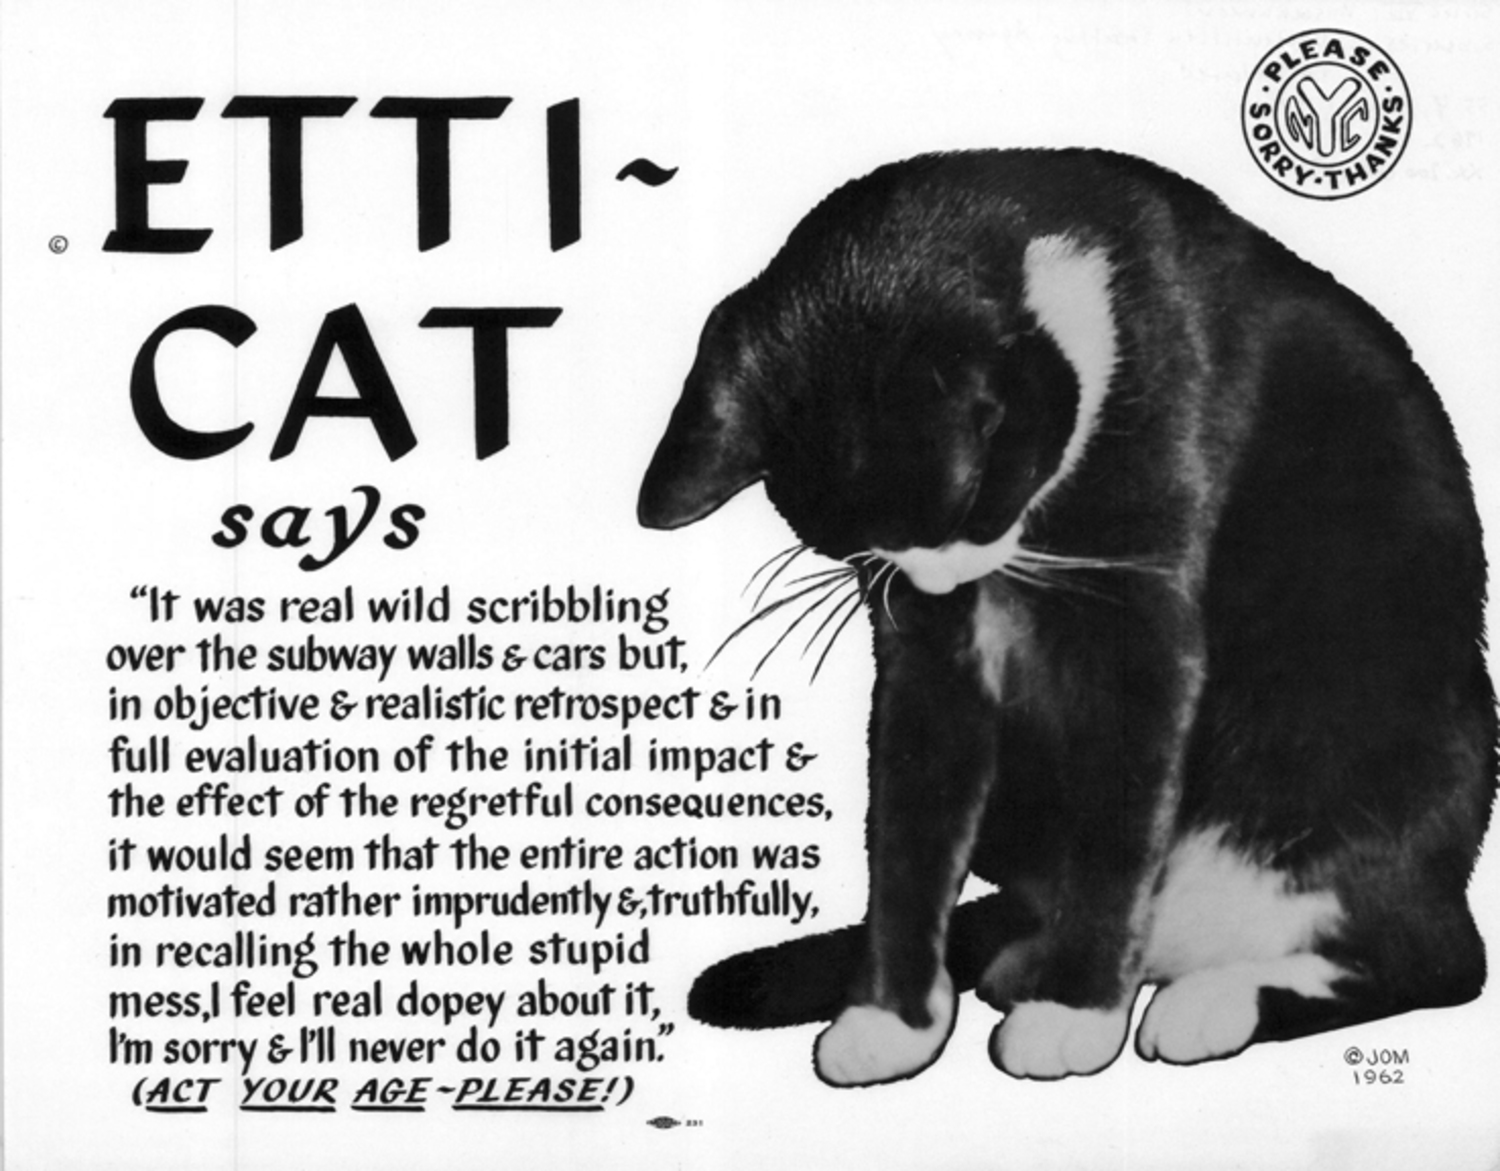 """Etti-Cat says … Act Your Age ~ Please!"" (1962) (courtesy Poster Collection, New York Transit Museum)"